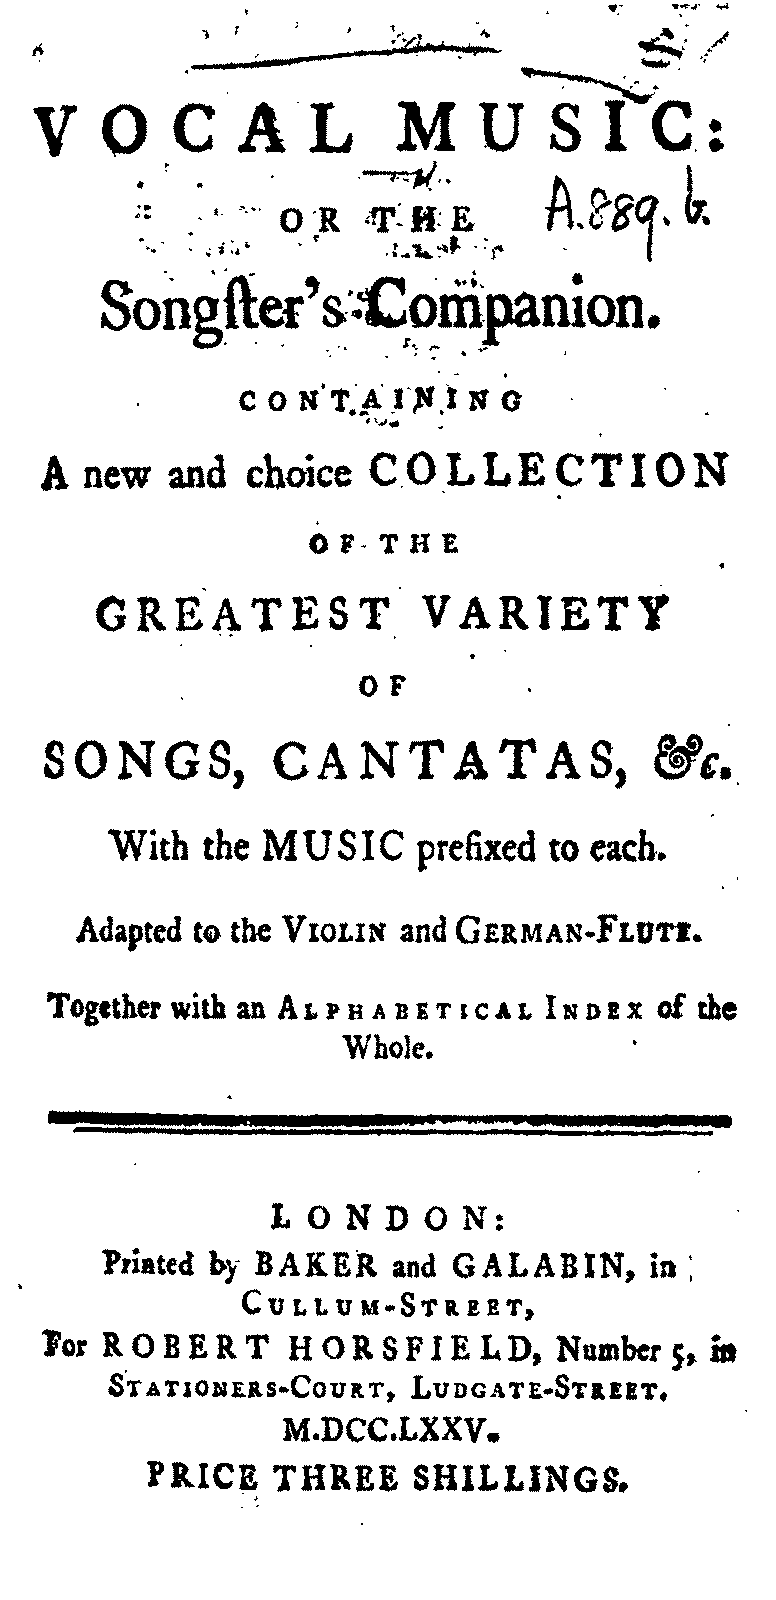 PMLP182839-vocal music songsters companion 1775 1.pdf